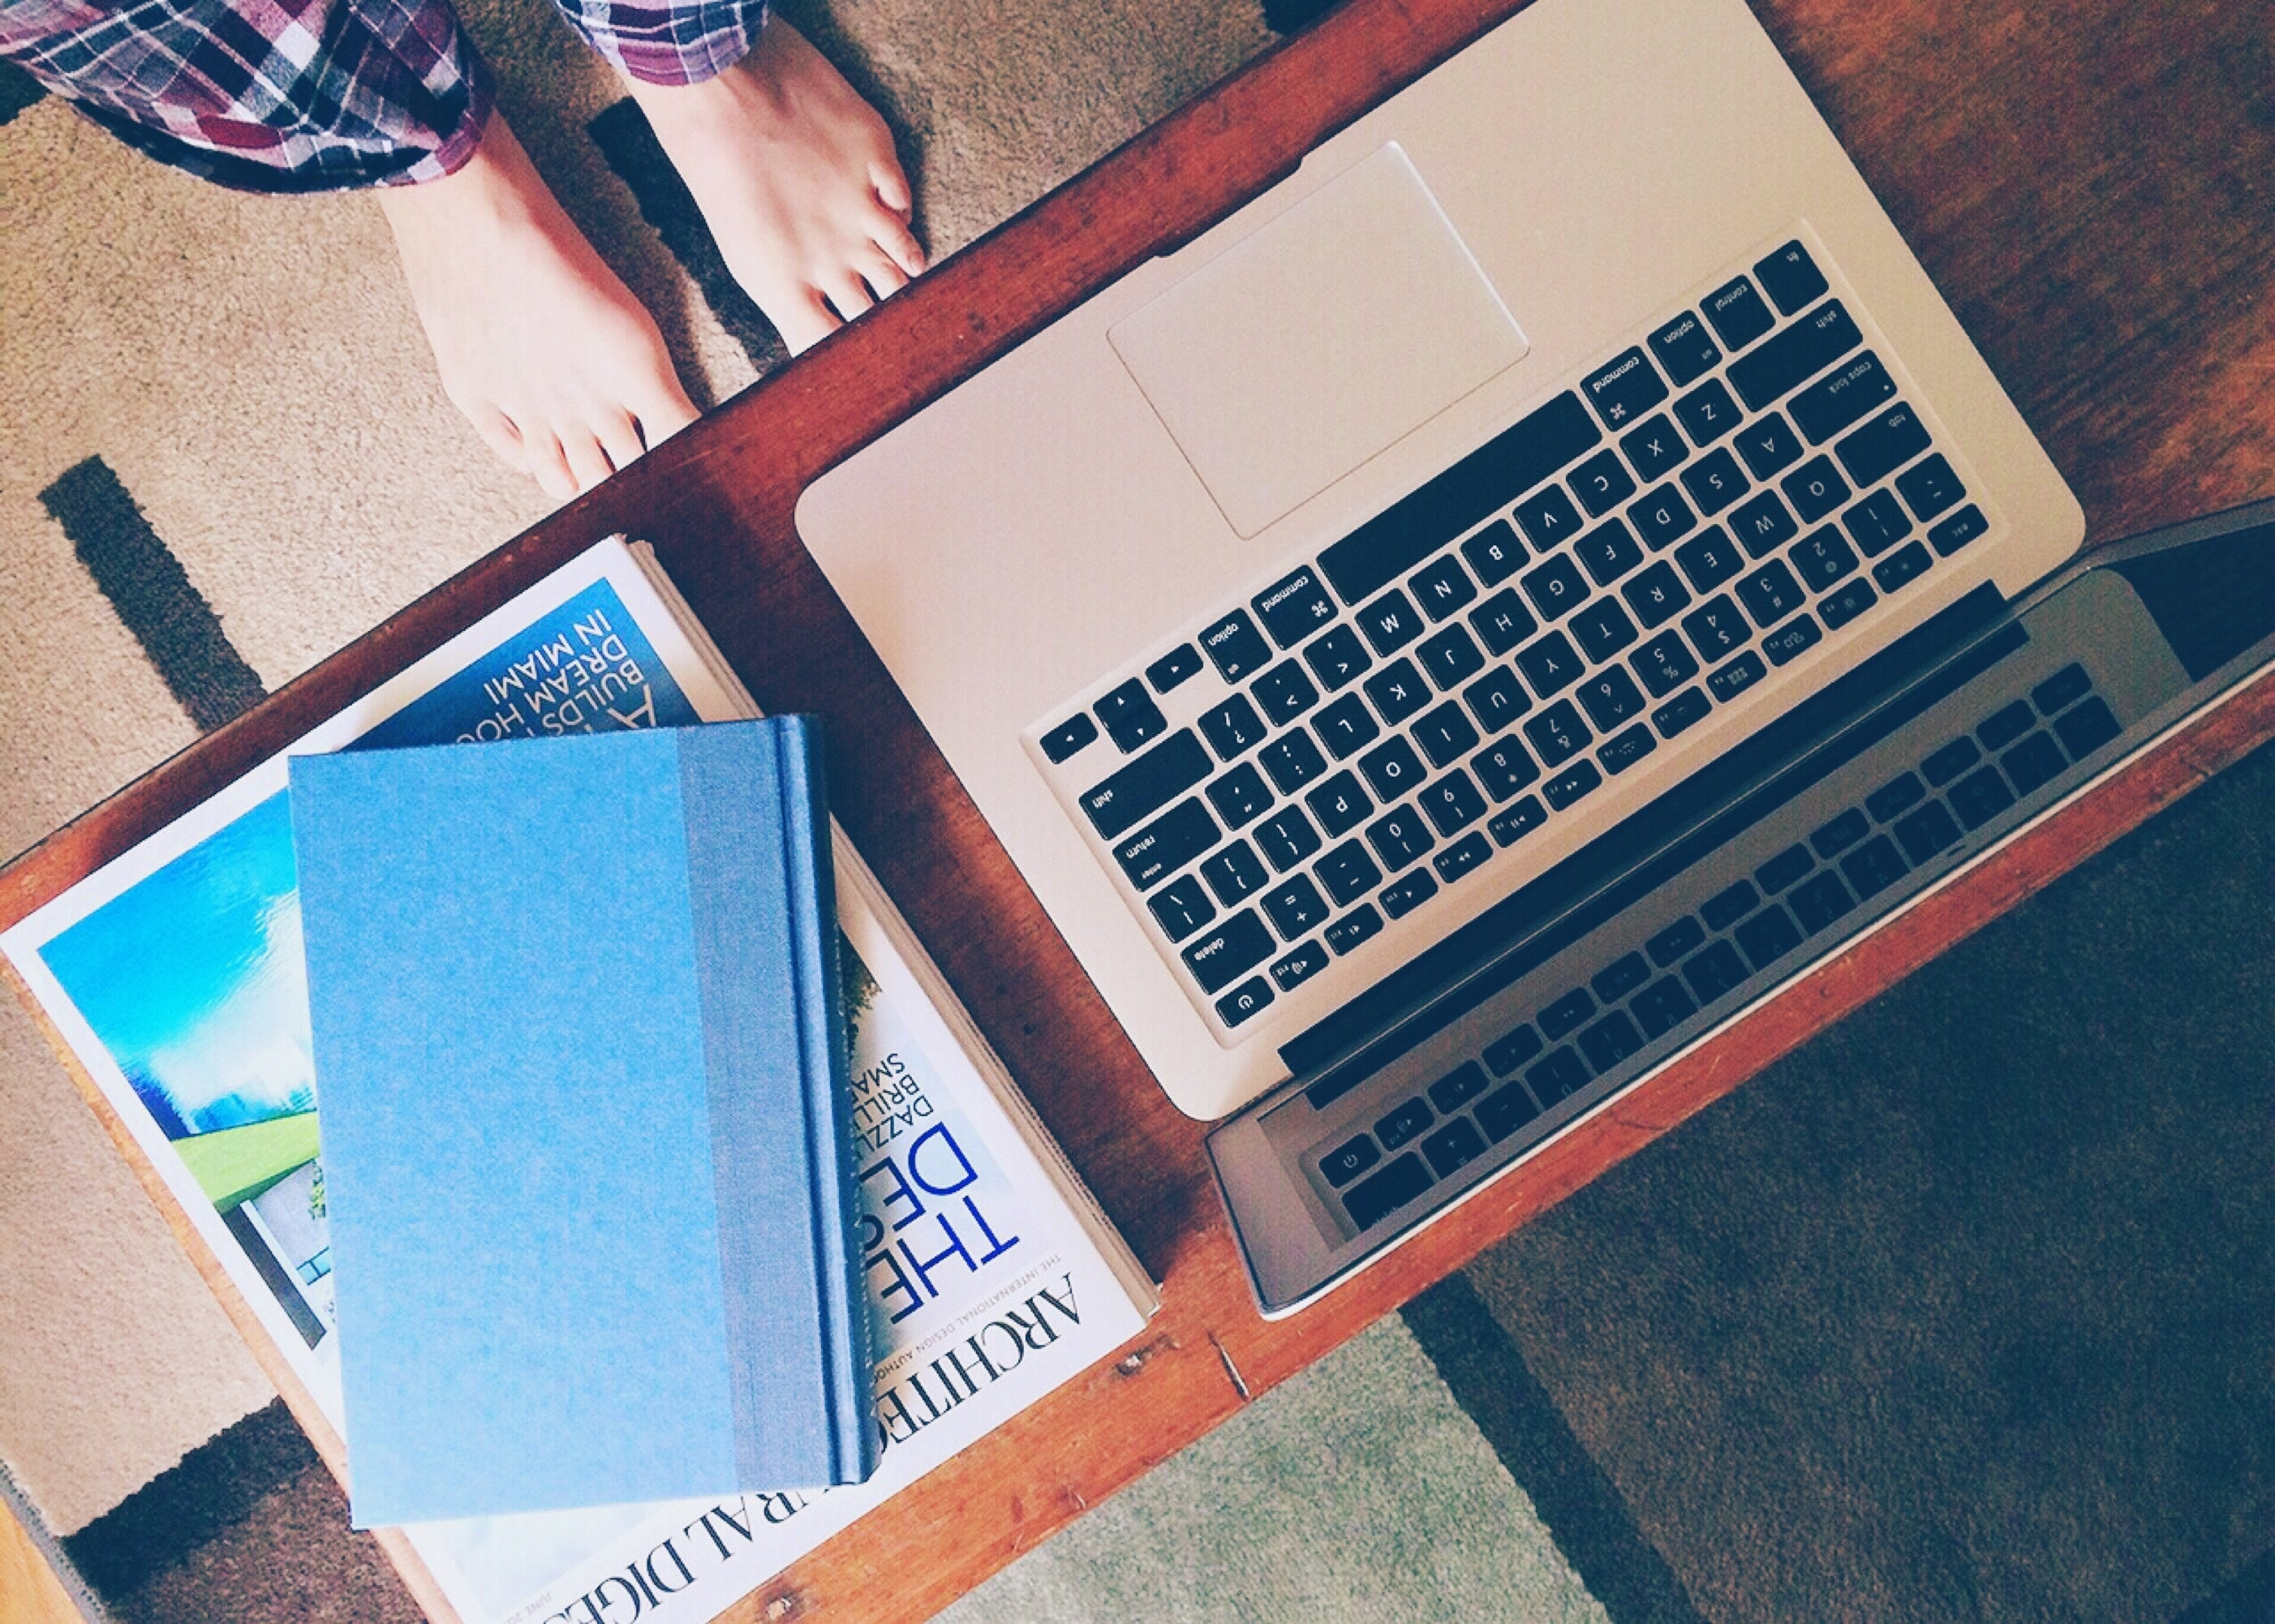 Macbook air beside 2 books on table photo